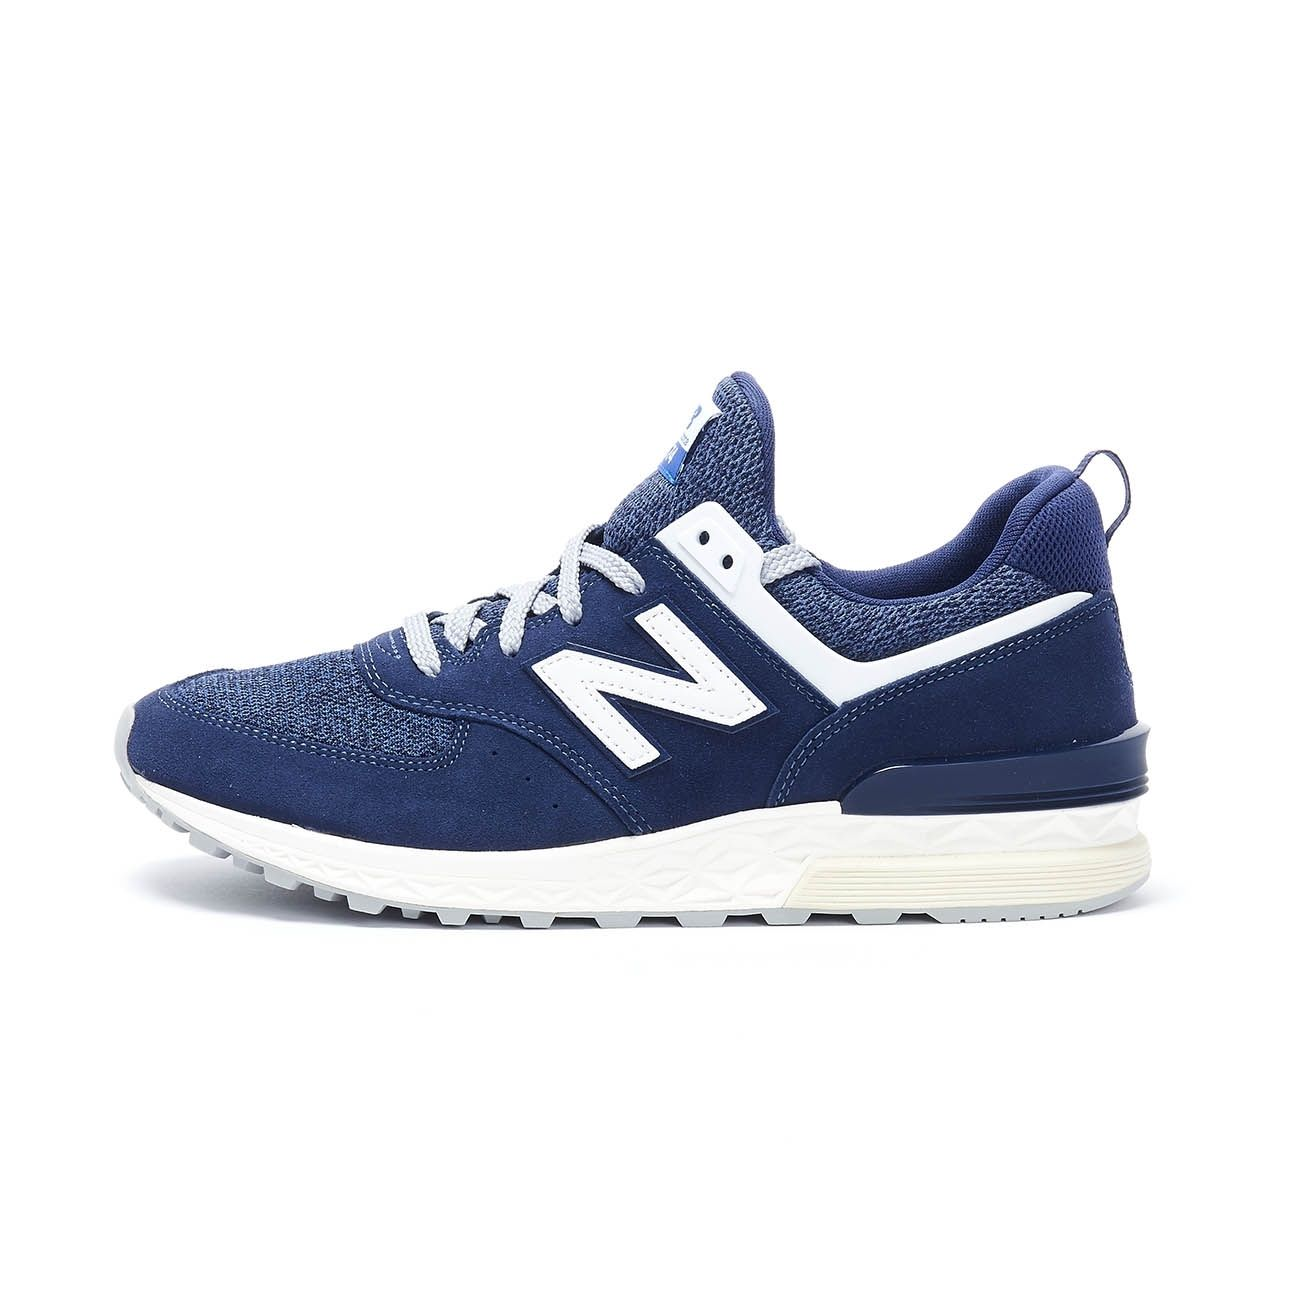 NEW BALANCE SNEAKERS 574 SPORT LIFESTYLE SUEDE Uomo Navy ...